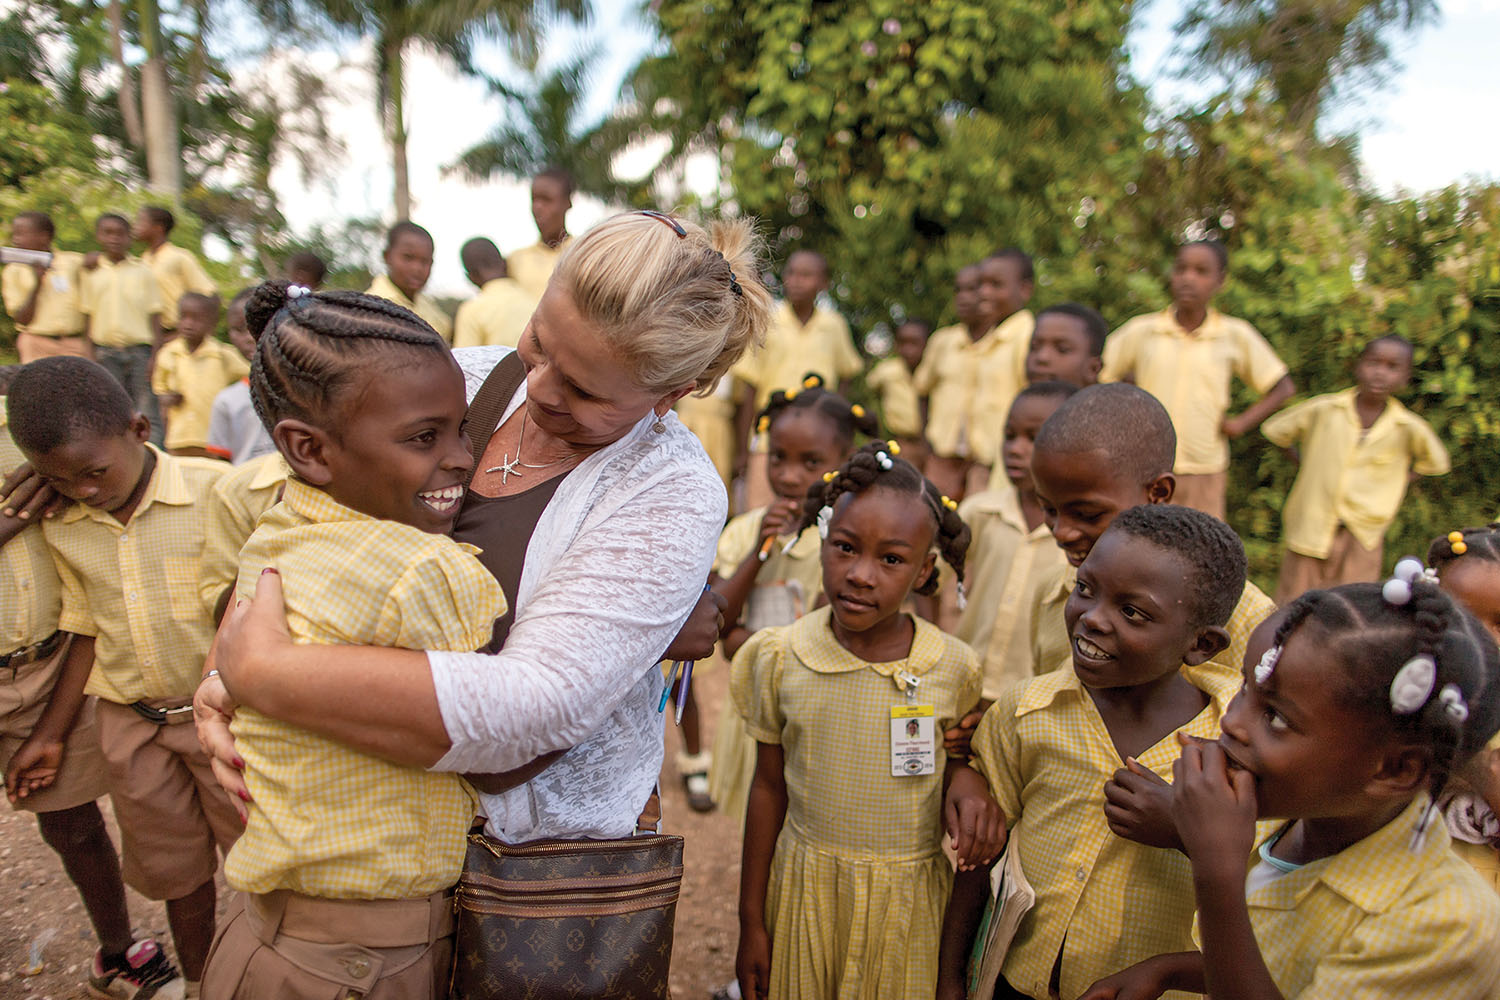 Janet Hunt and her sponsored child Rose embrace with joy as they are reunited at our school in Tom Gateau.